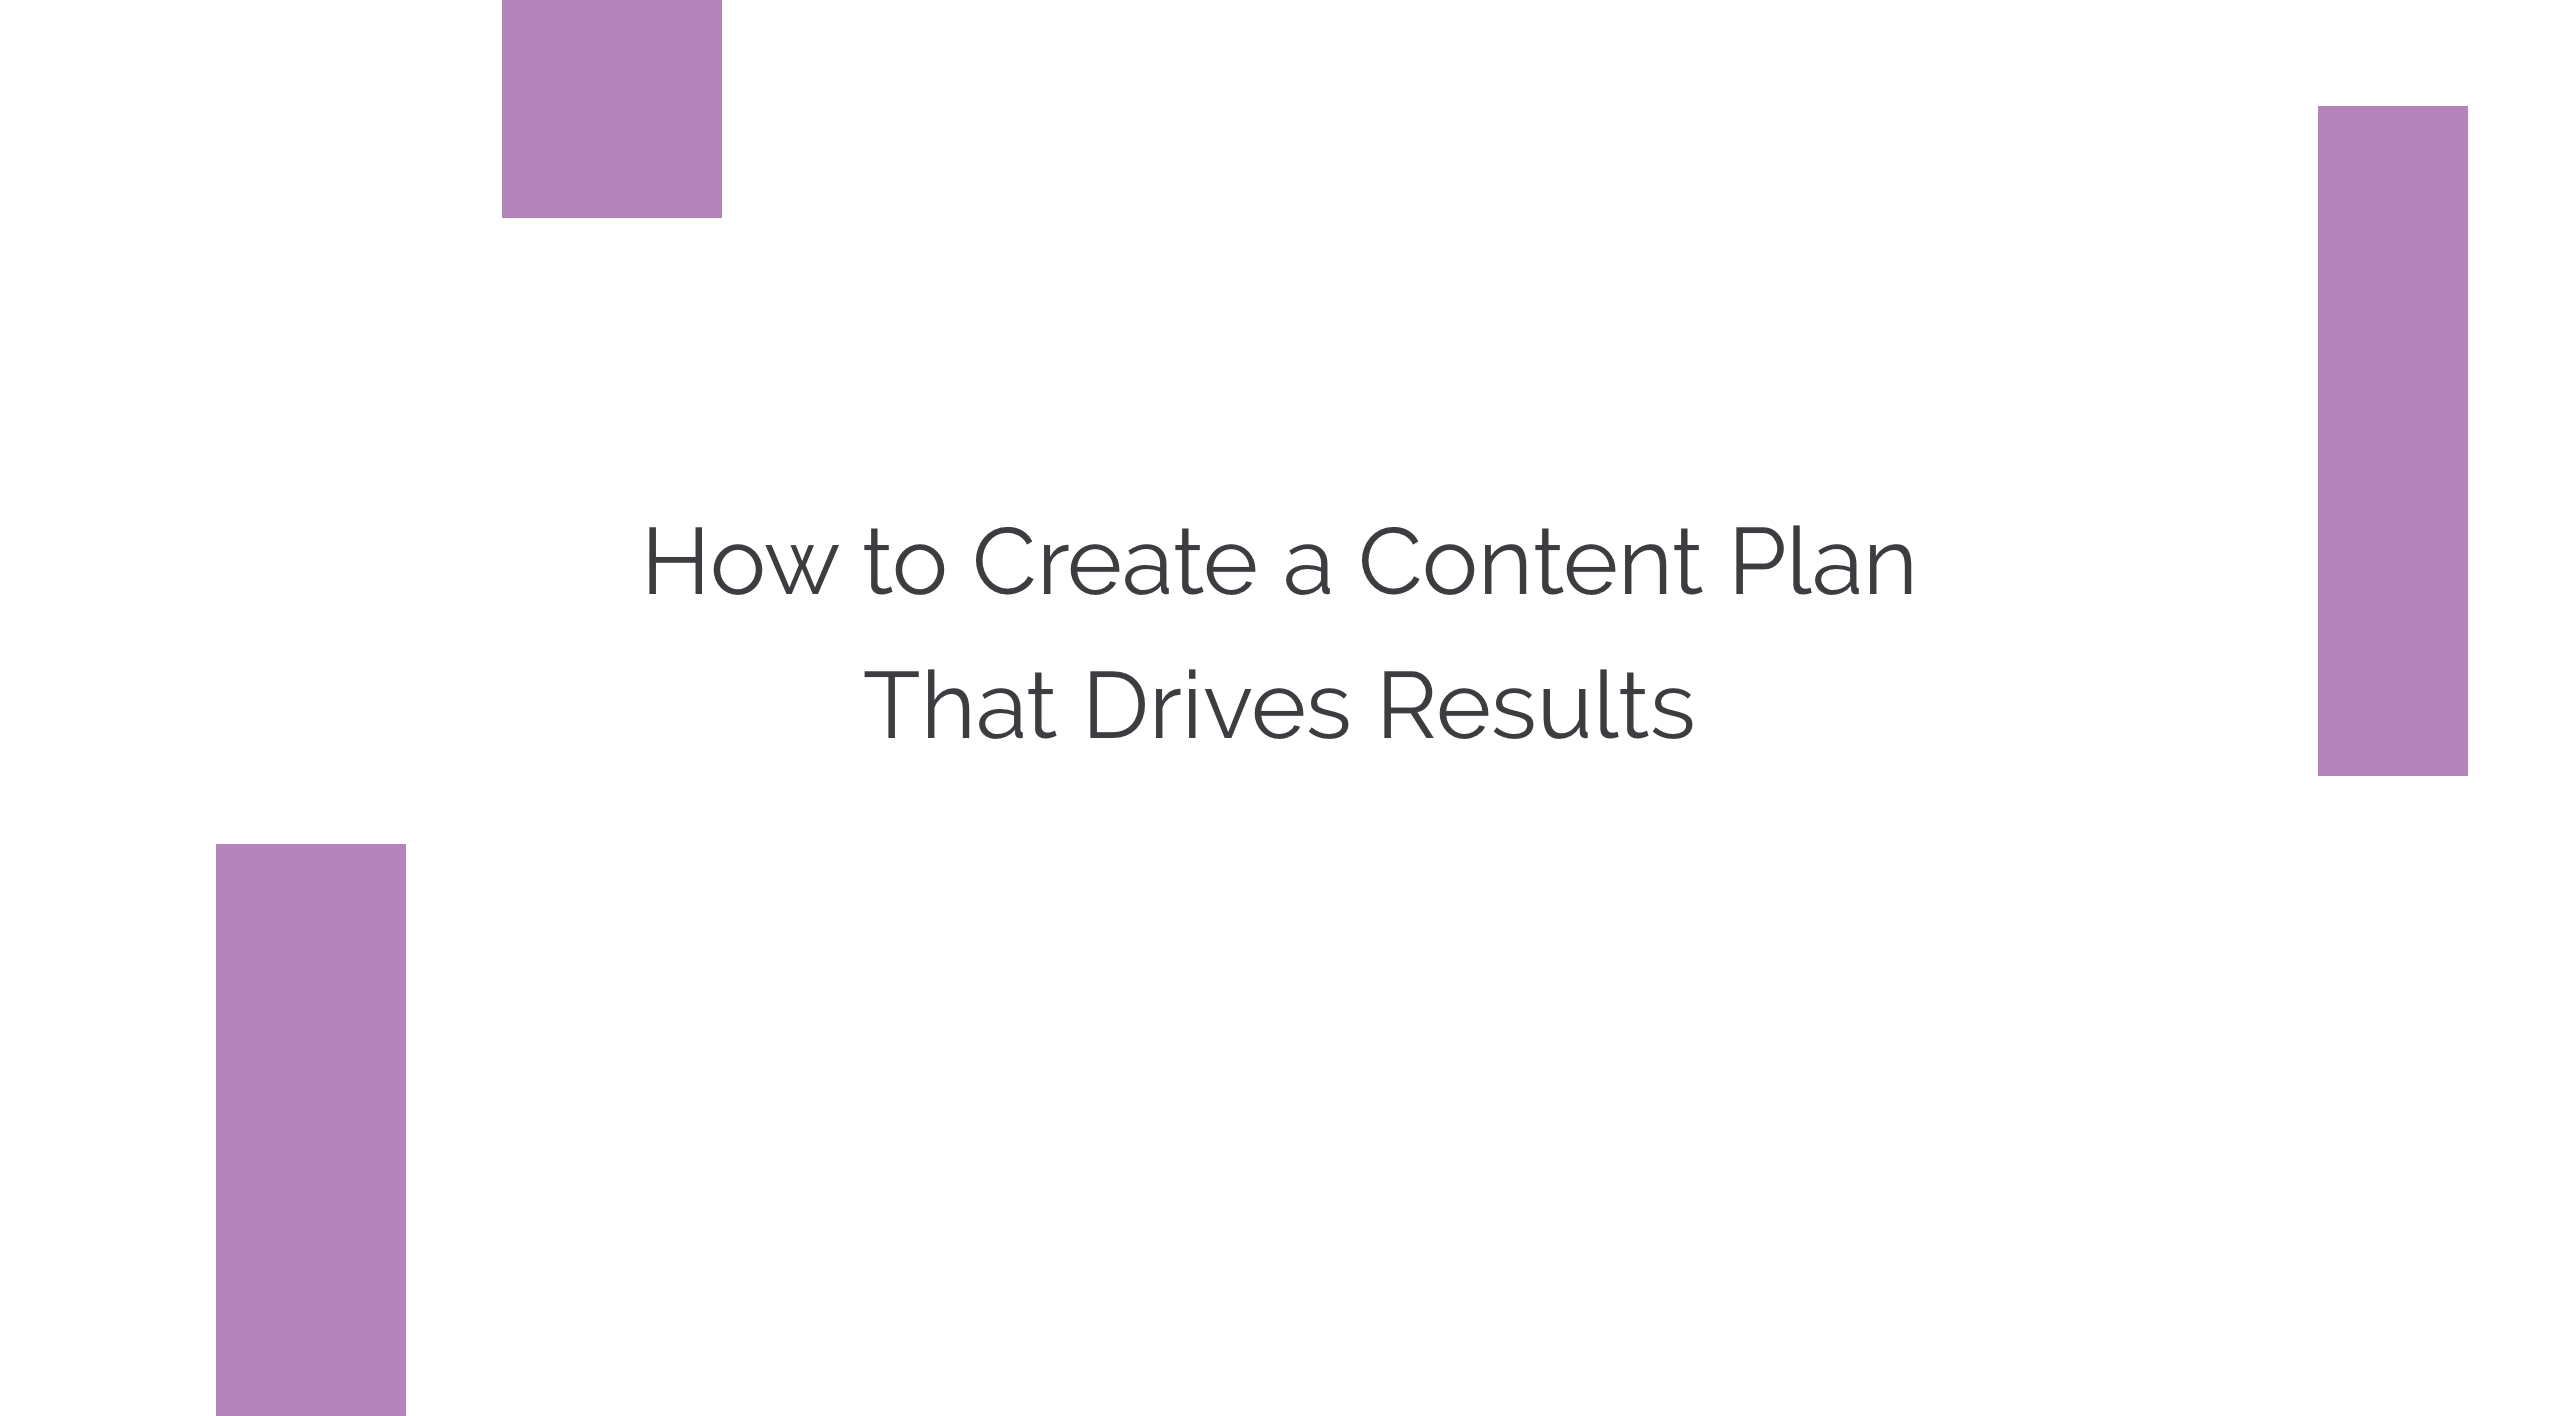 How to Create a Content Plan That Drives Results